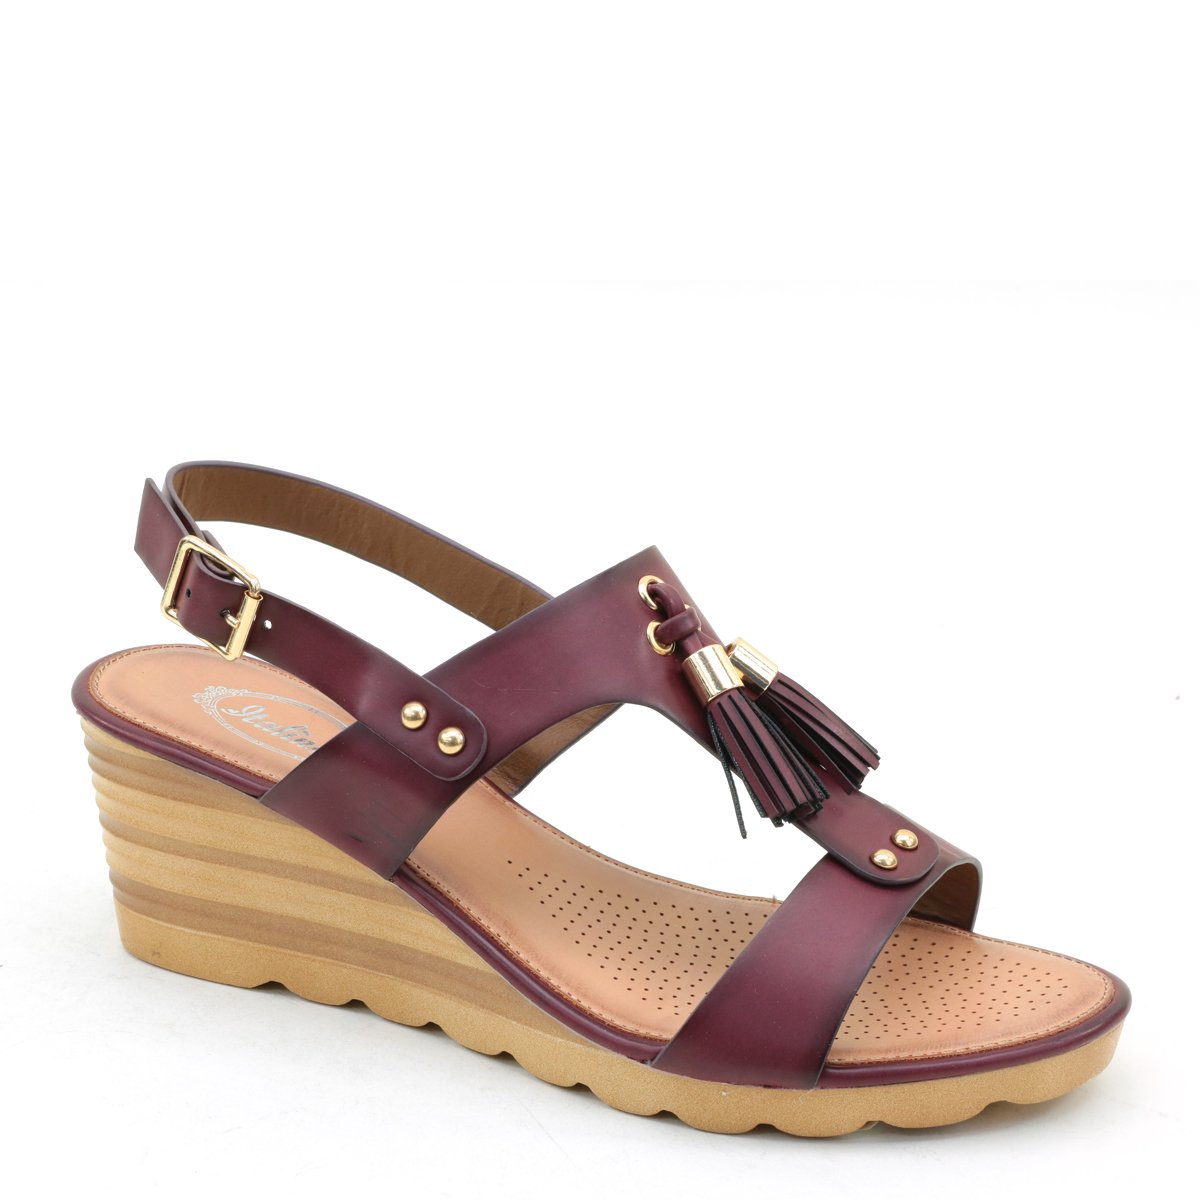 Brieten New Women's Tassels Wedge Comfort Sandals B07DK6MLPB 10 B(M) US|Burgundy